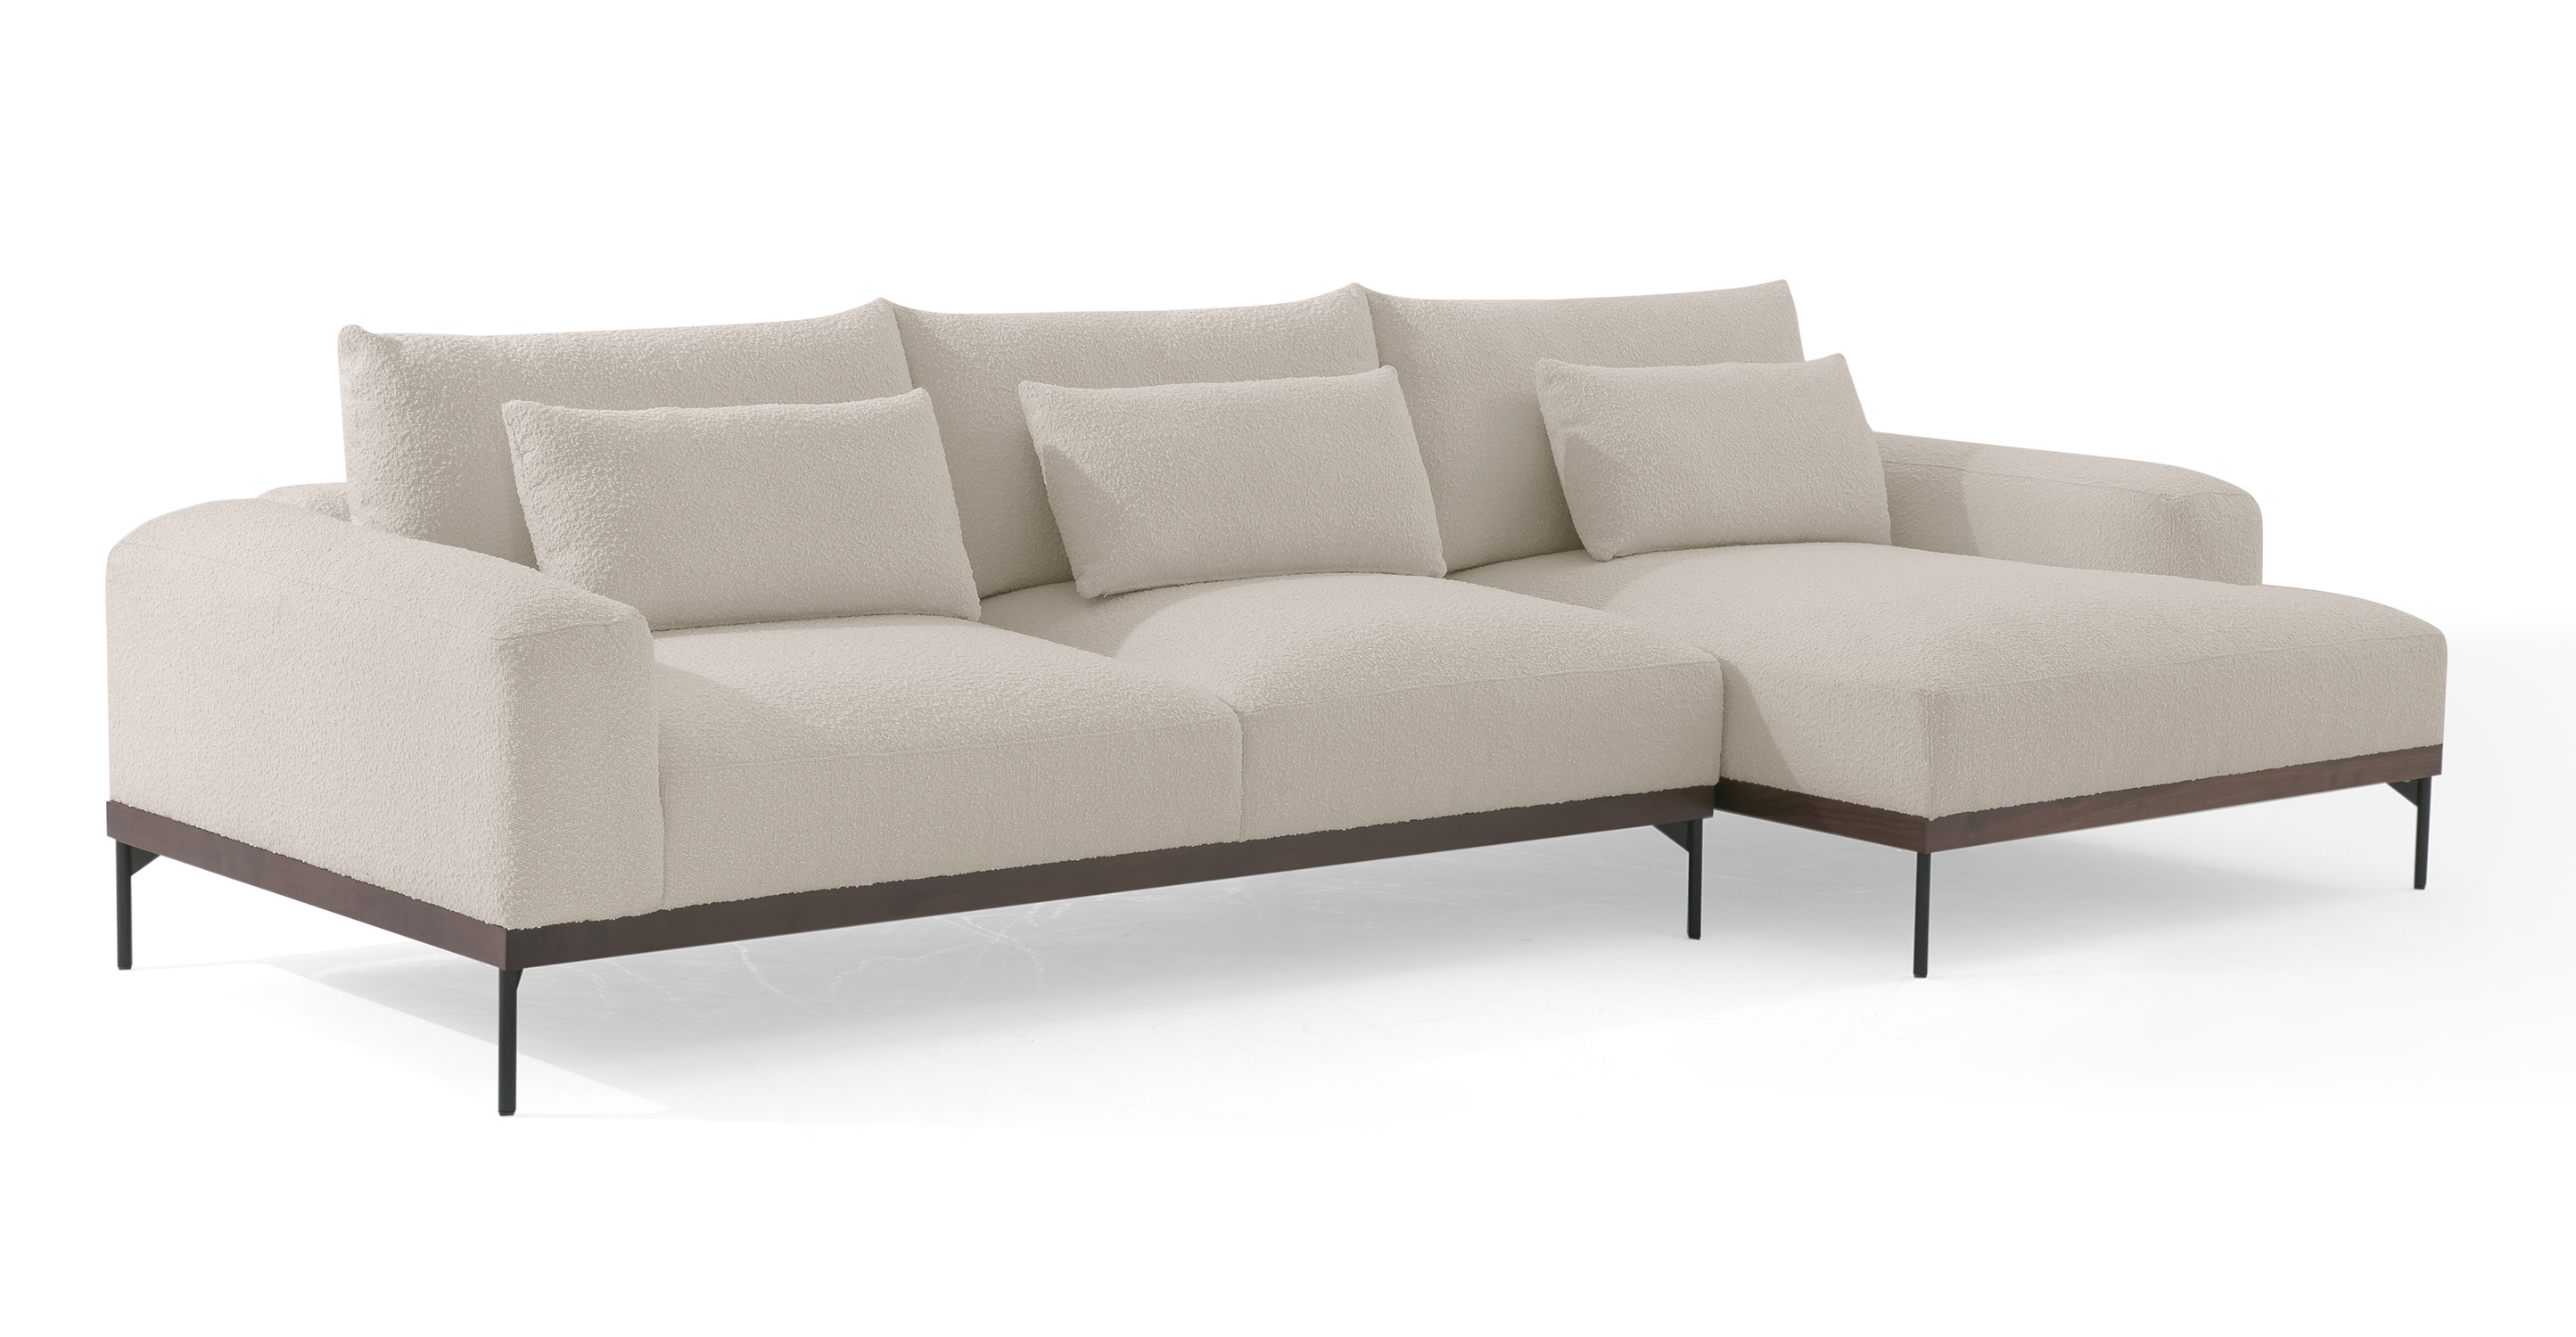 """Tate 122"""" Fabric Sofa Sectional Right, Blanc Boucle"""